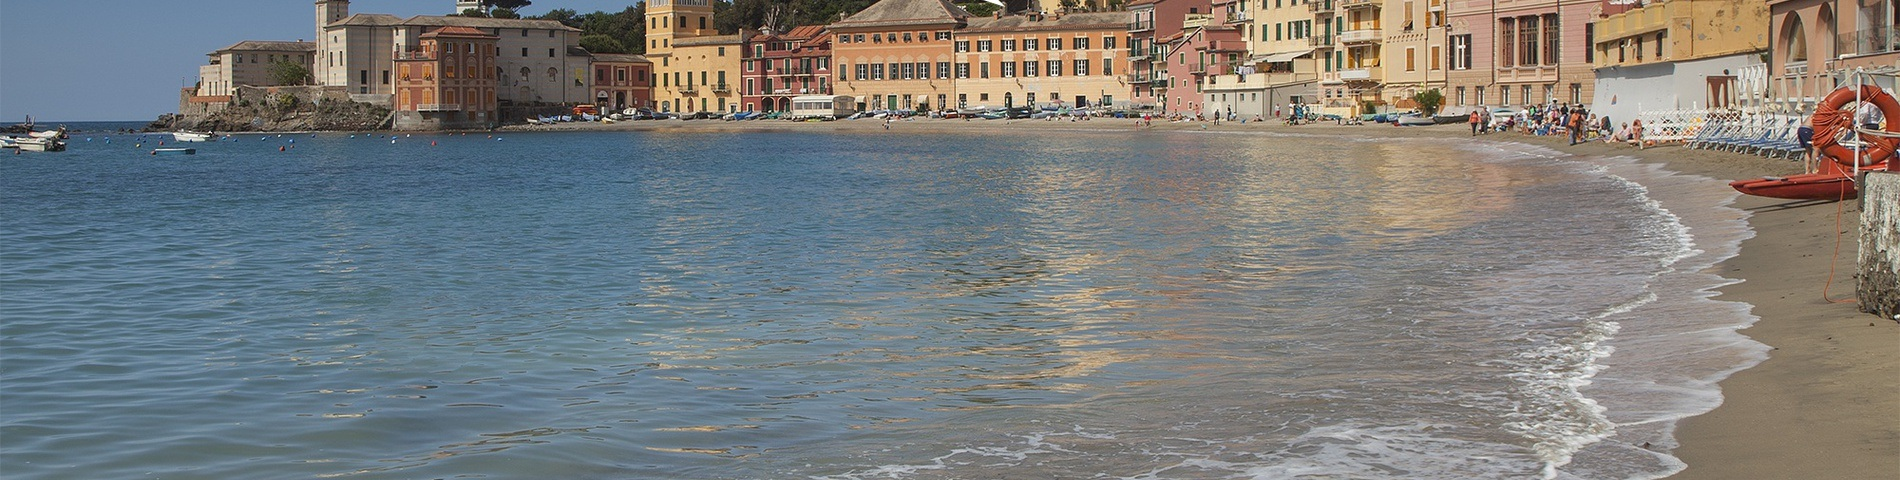 ABC Sestri Levante picture 19